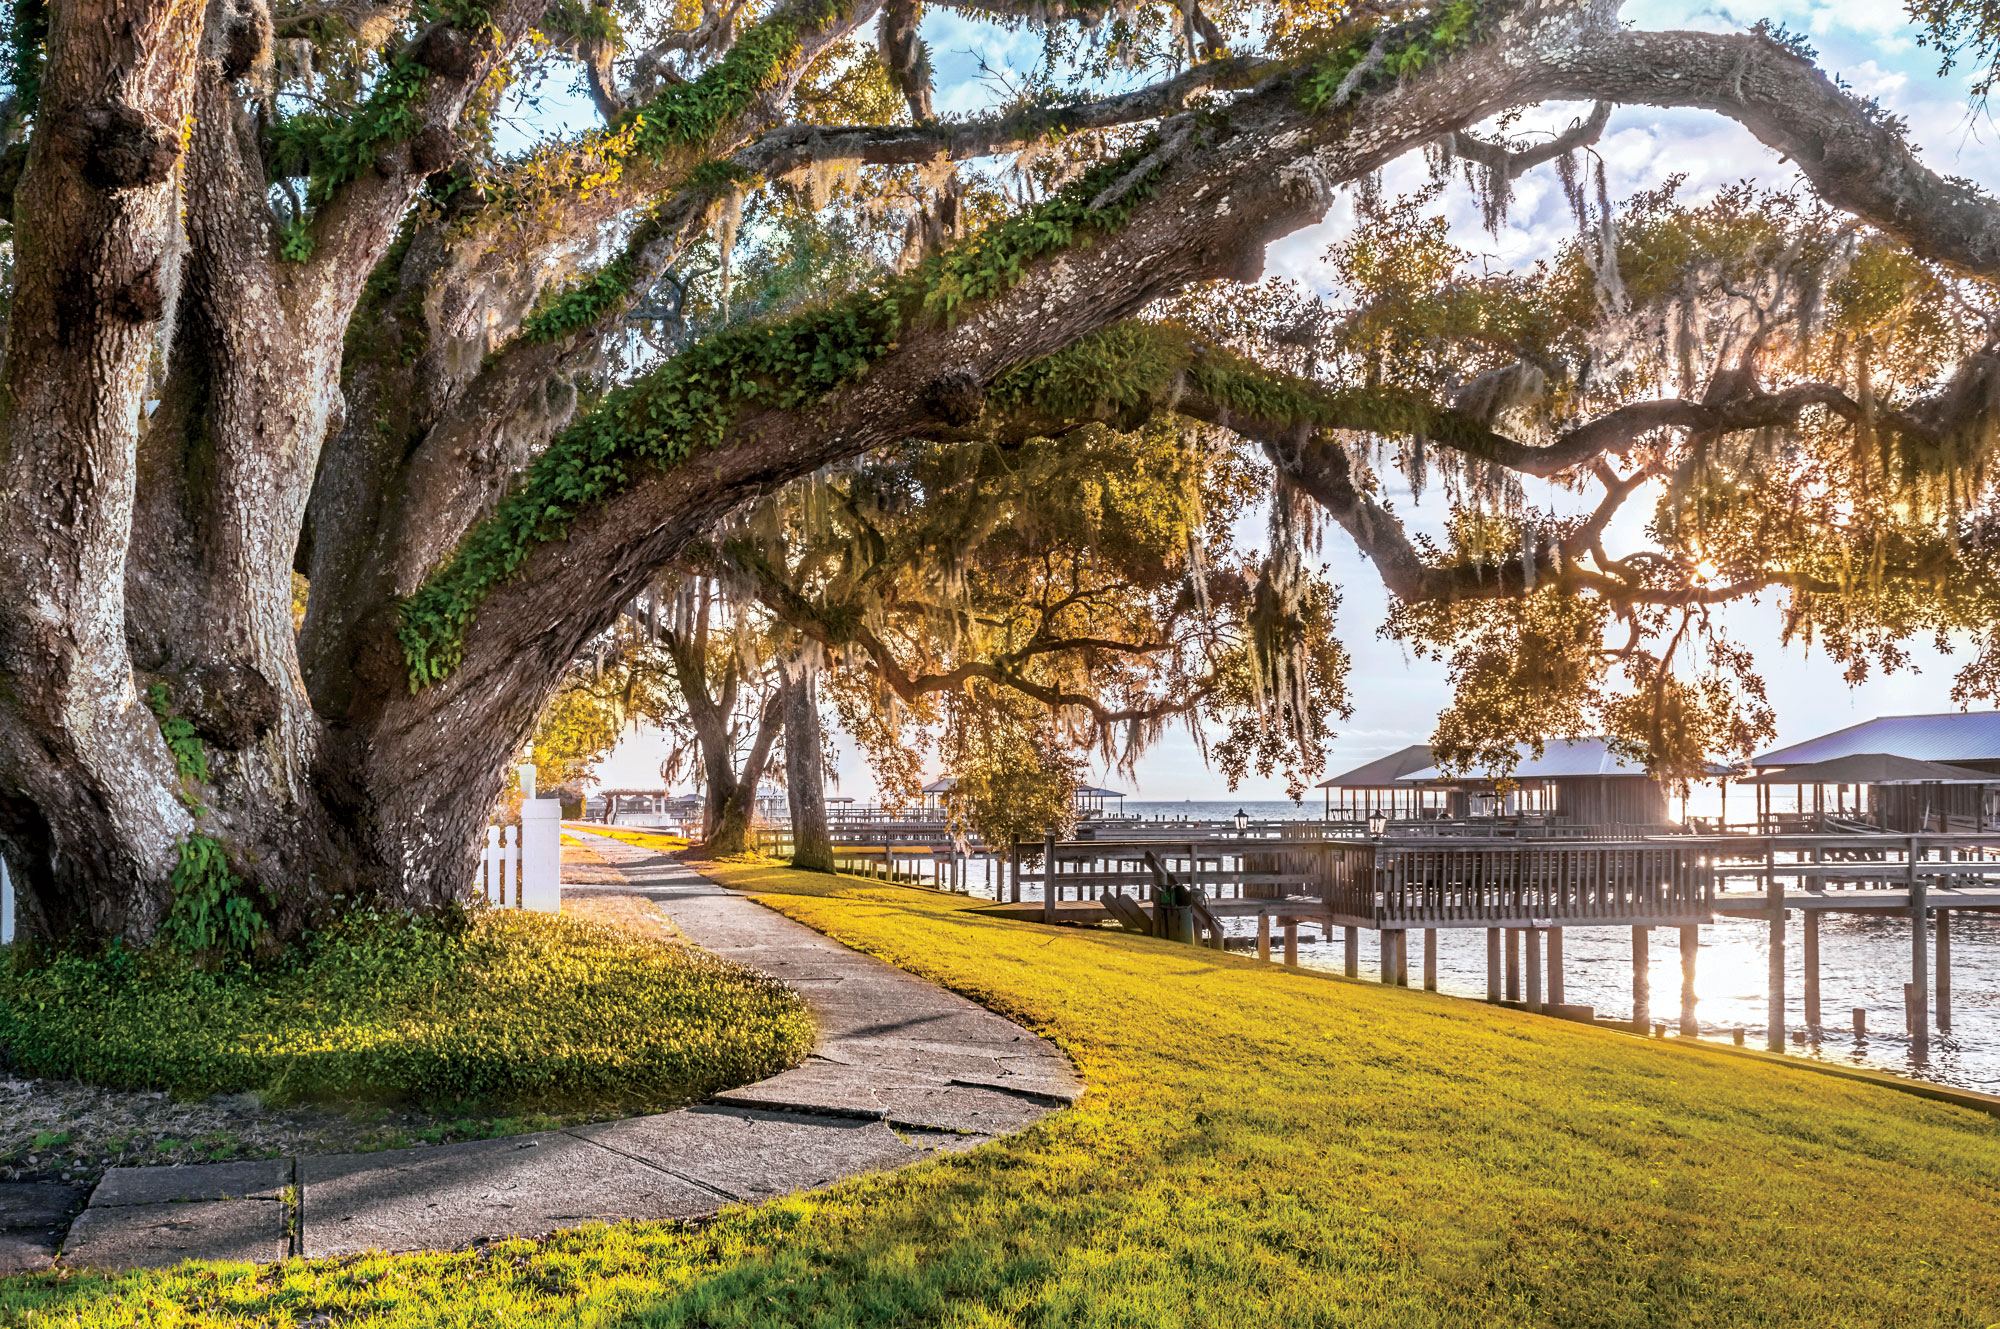 Alabama: Fairhope